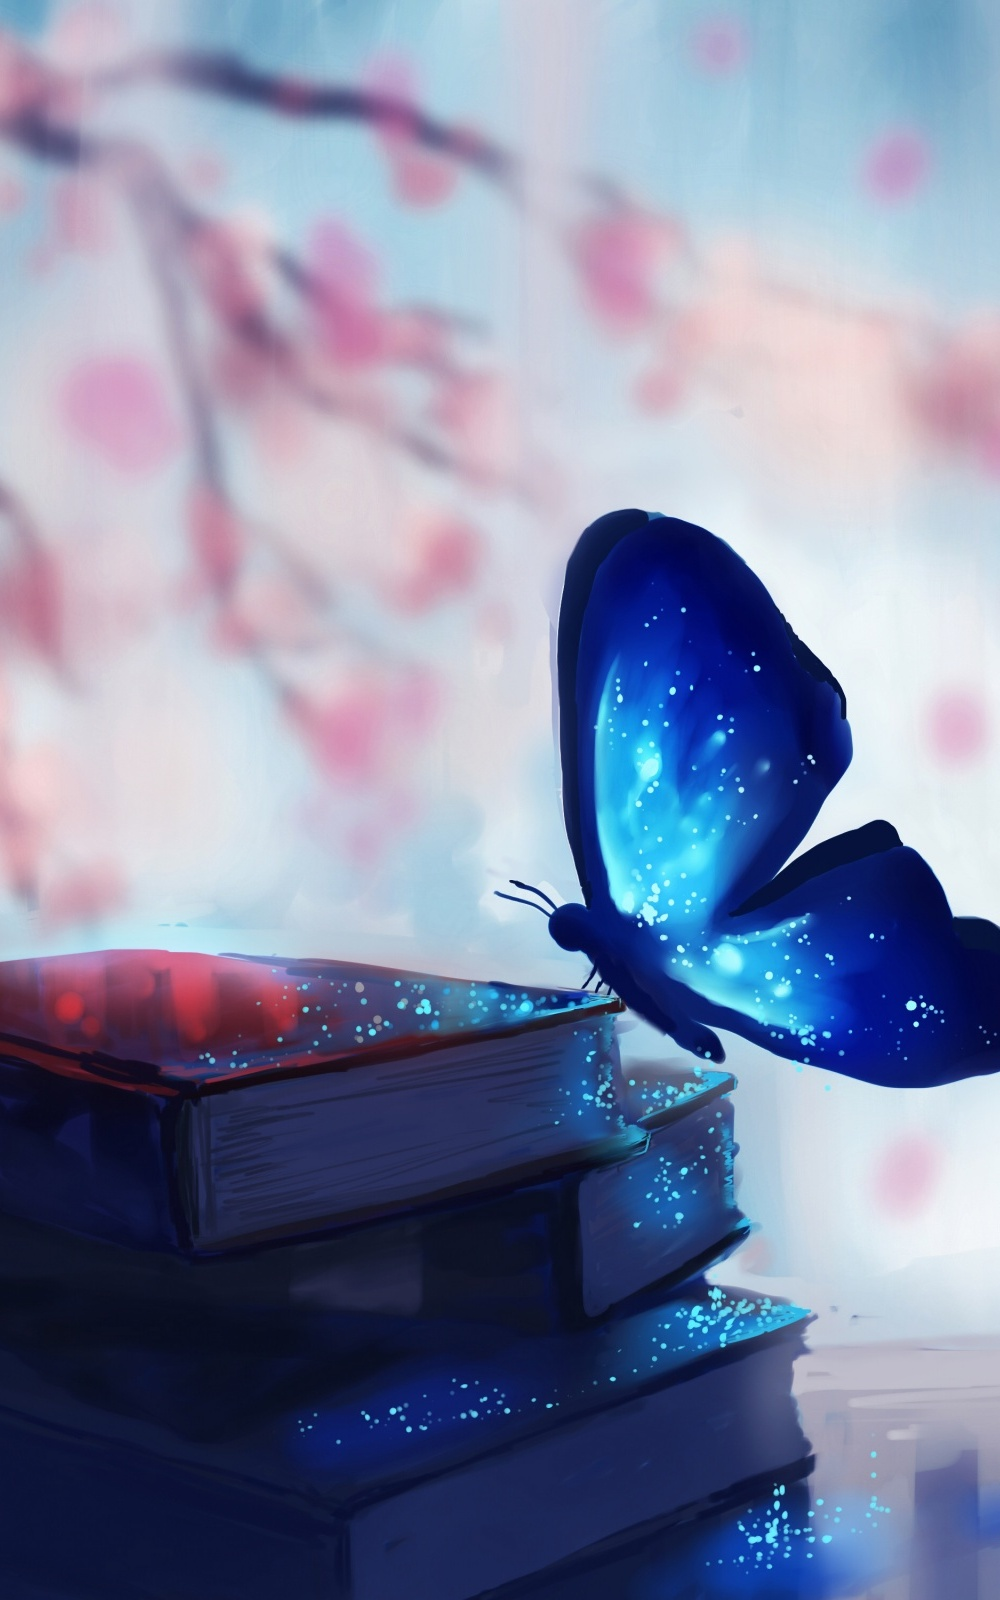 Butterfly Hd Wallpapers For Mobile Phones - HD Wallpaper